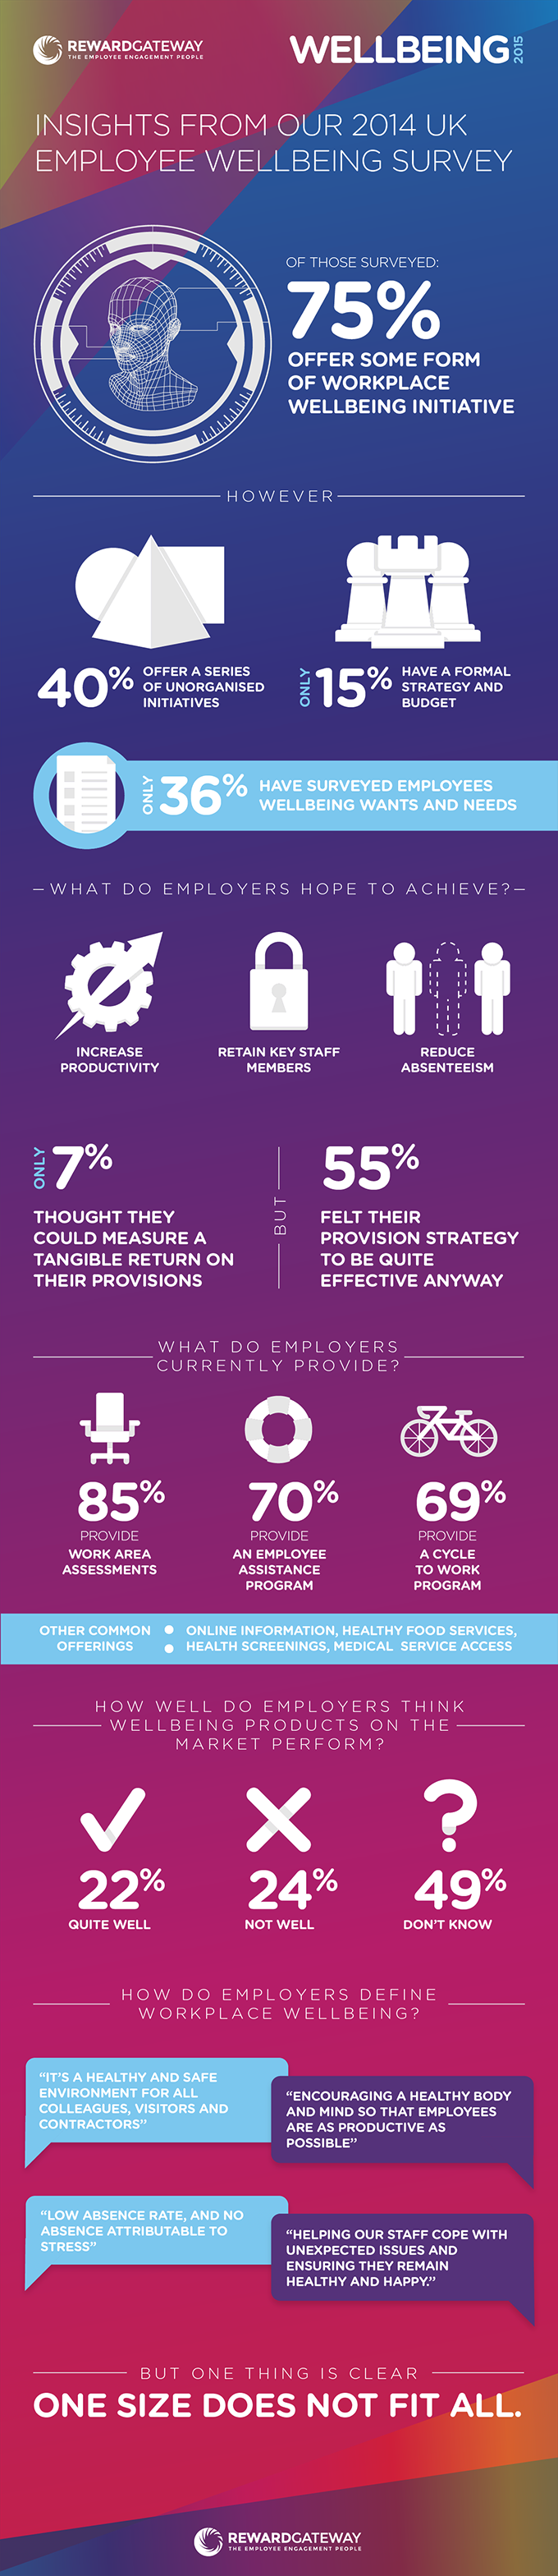 Wellbeing 2015 Survey Results Infographic